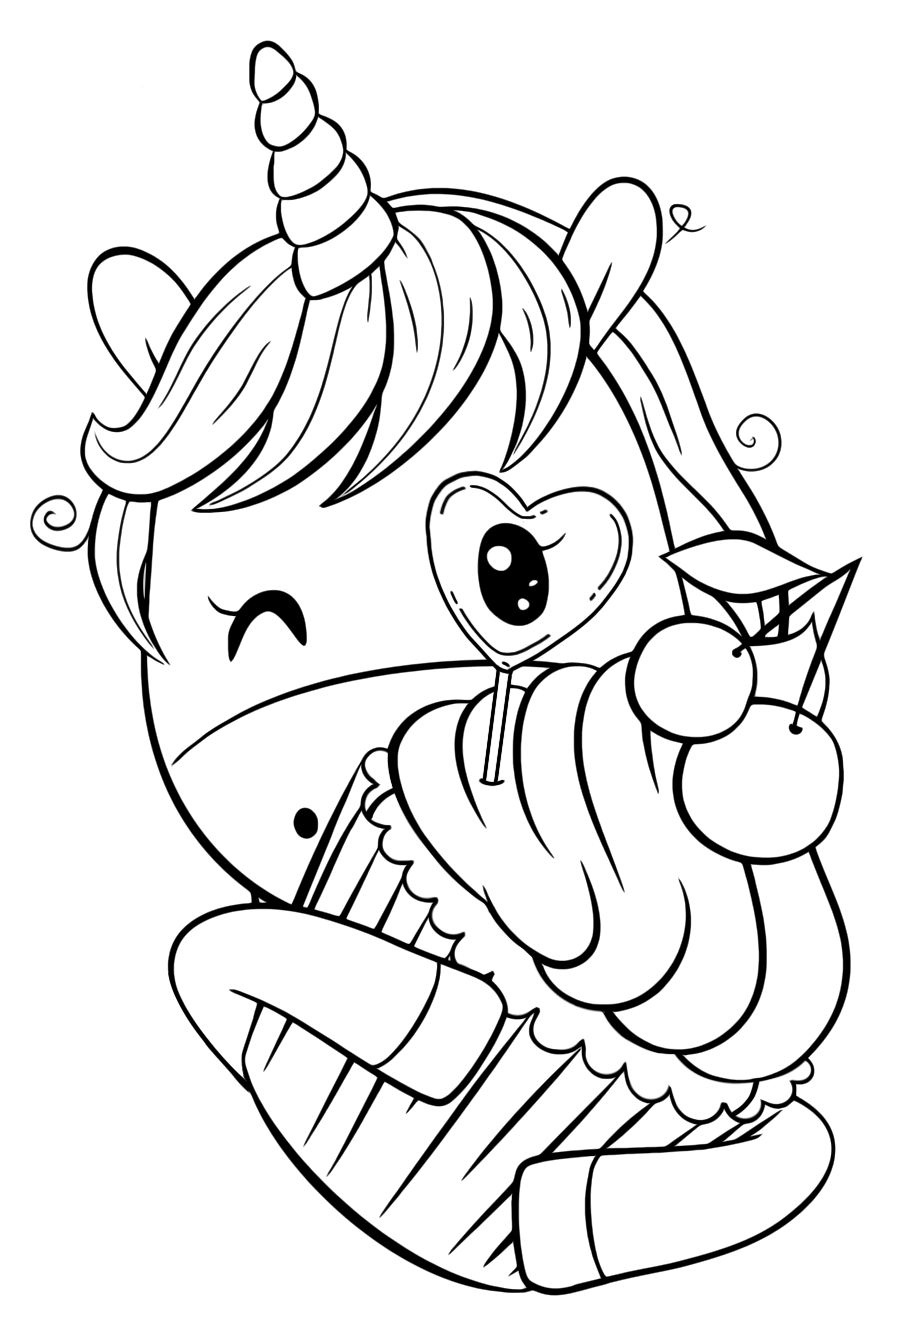 One unicorn's cutie with cupcakes - Coloring pages for you